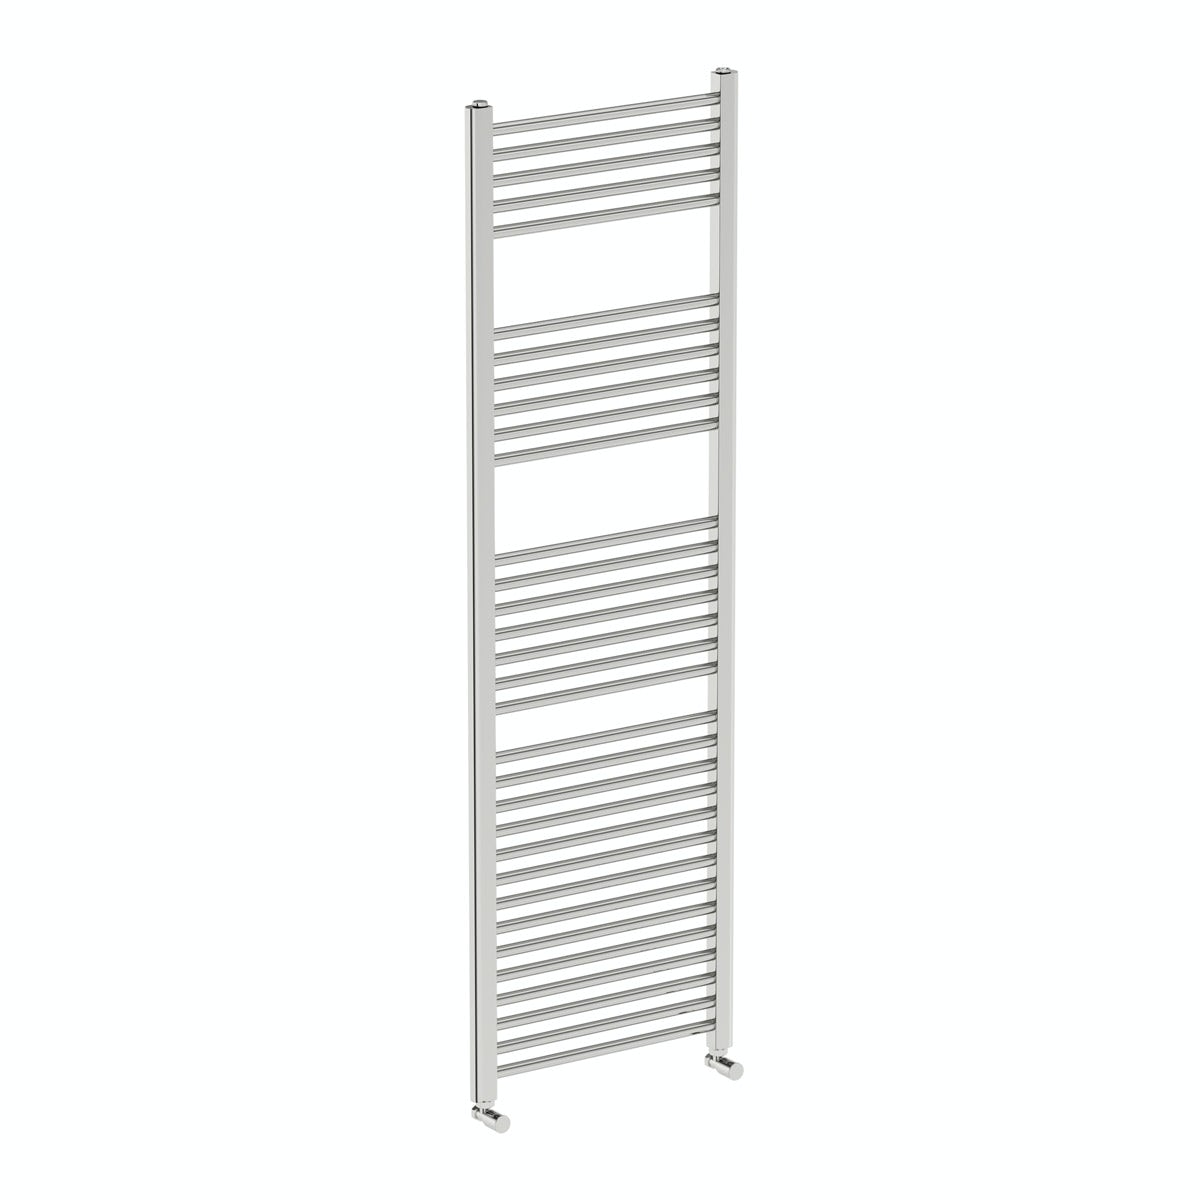 Orchard Eden round heated towel rail 1600 x 500 offer pack